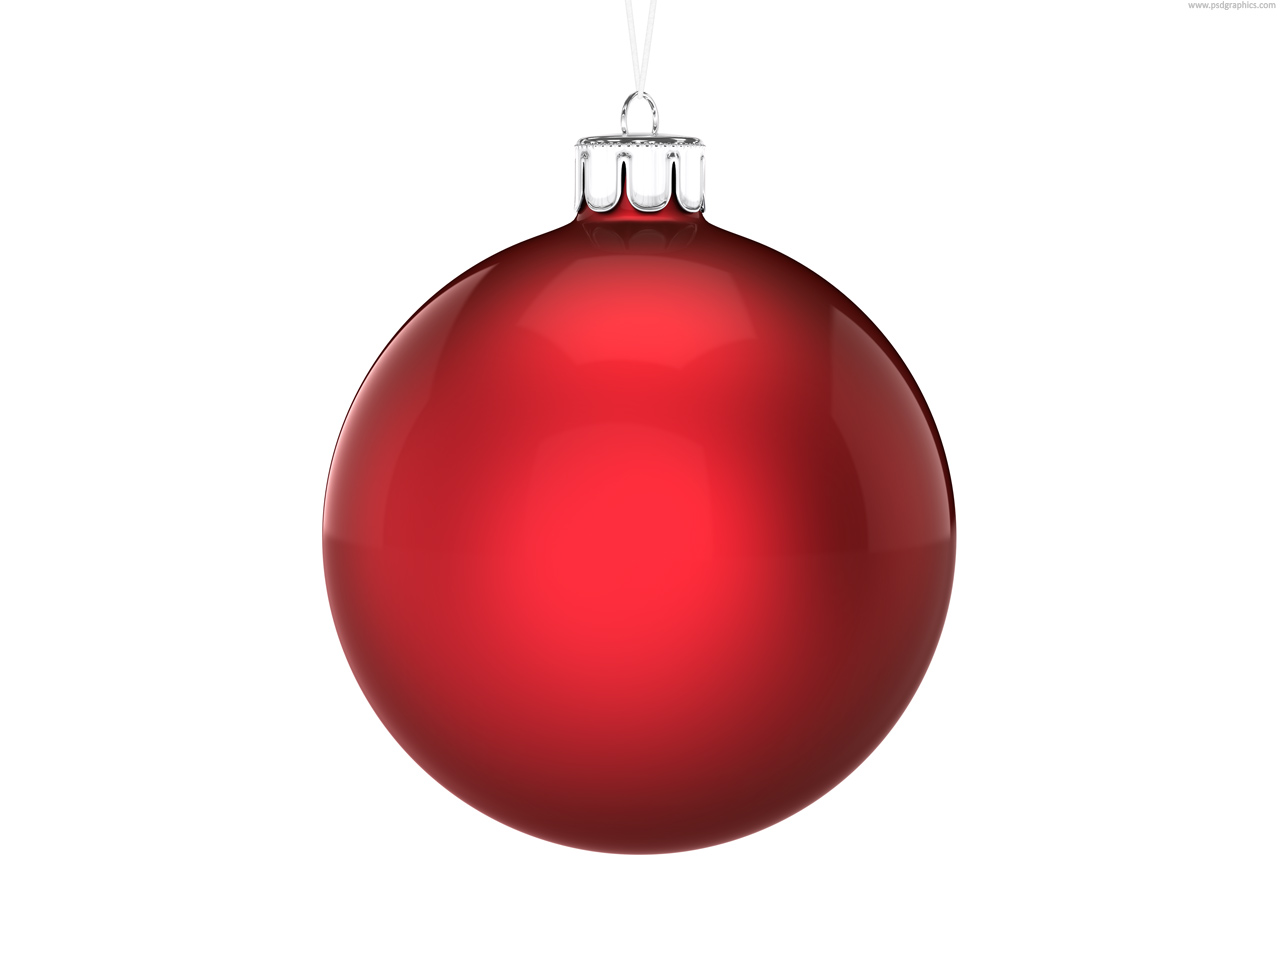 Paper ball ornament template